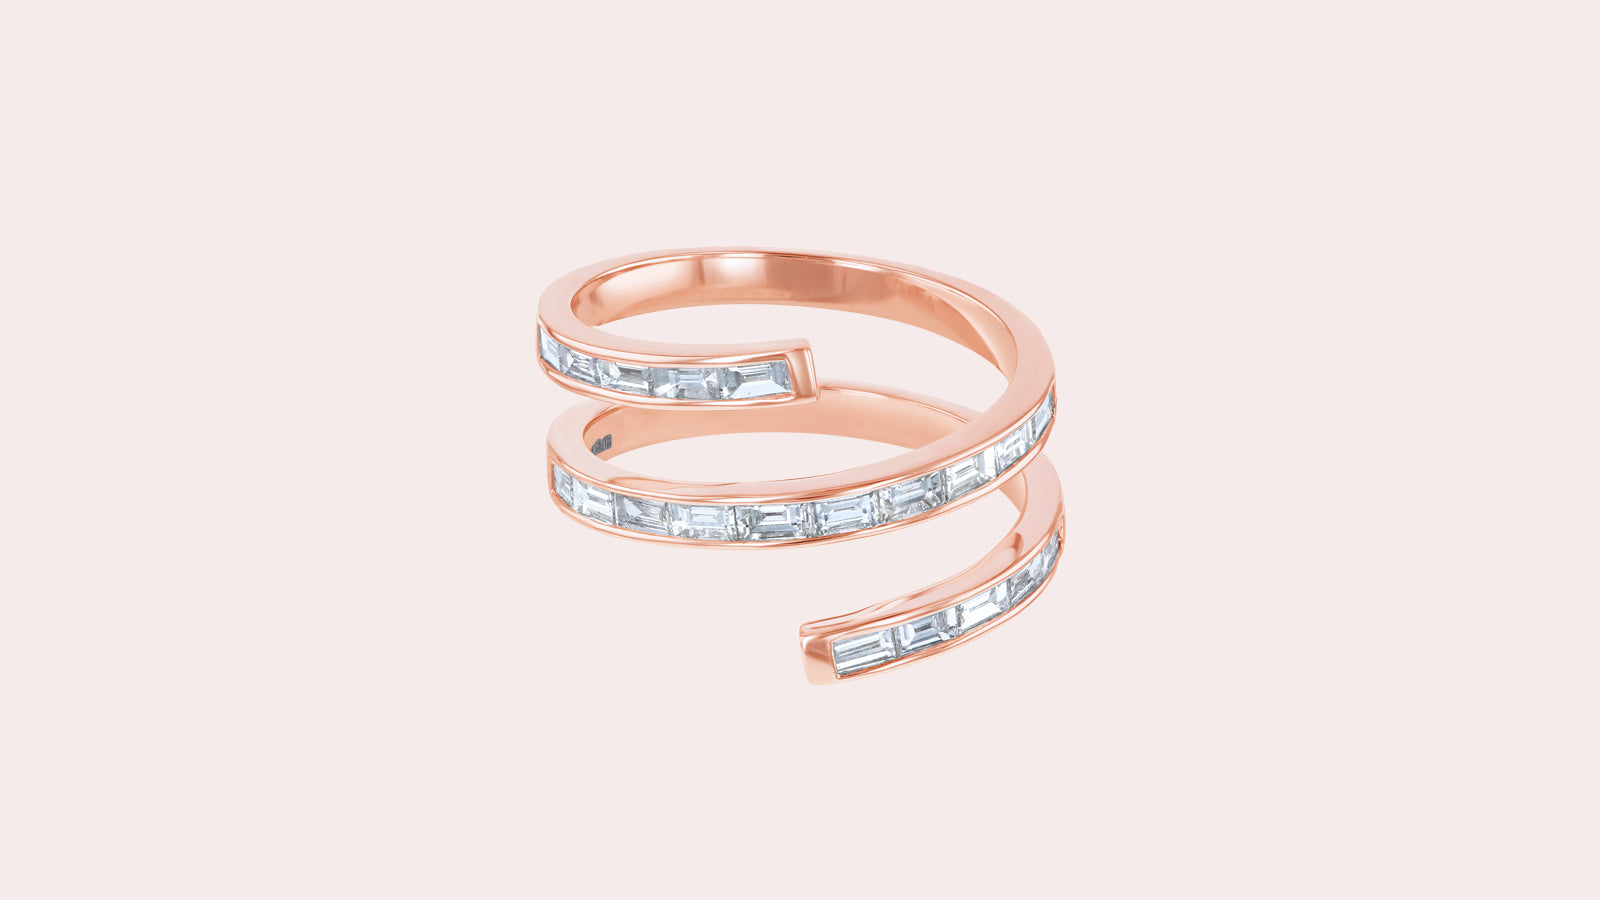 The Spiral Baguette Diamond Ring